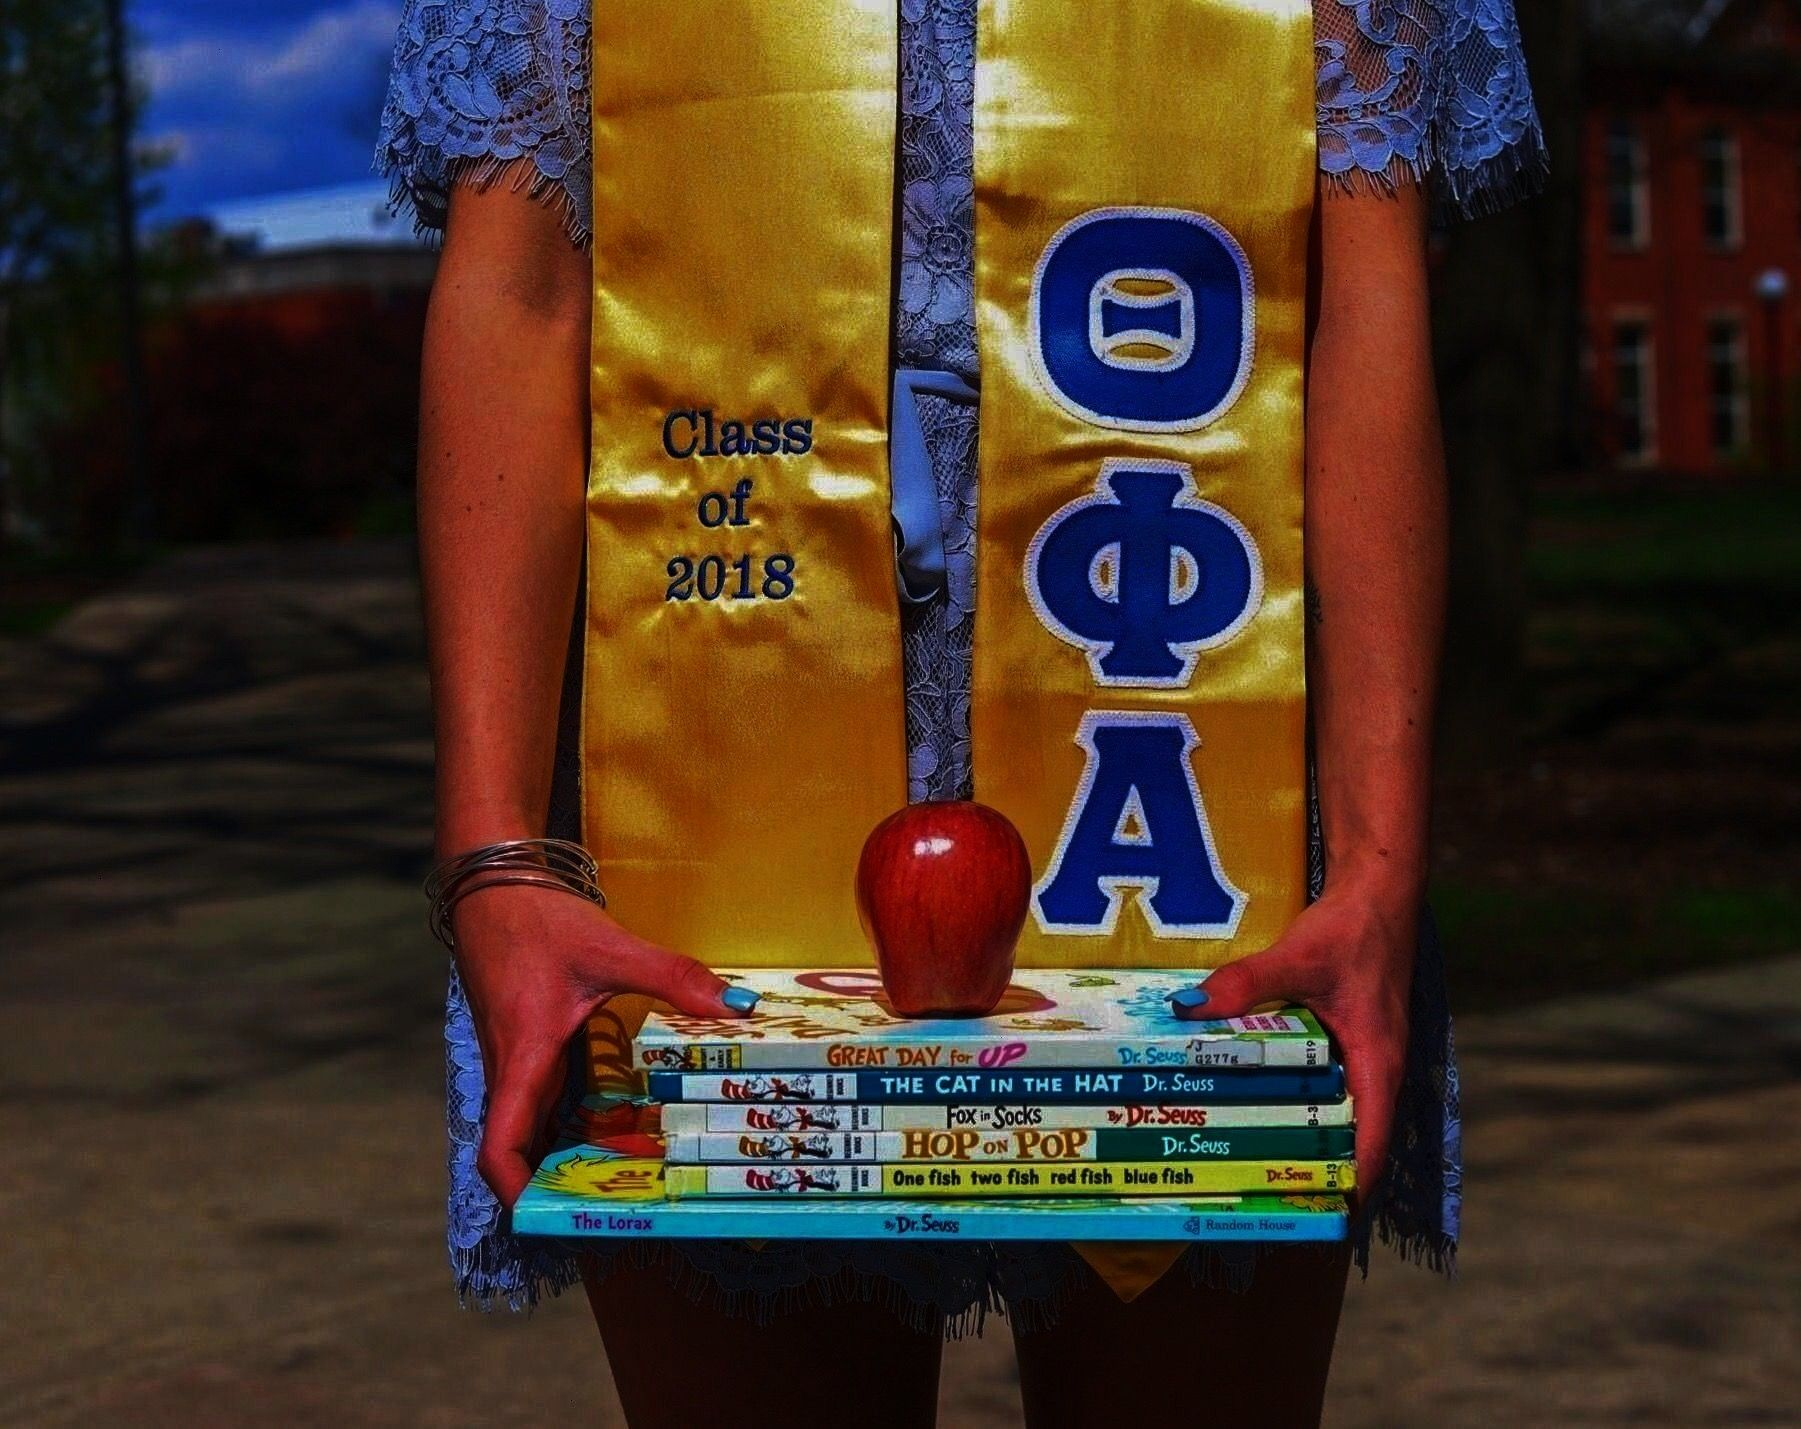 girl  Graduation should be celebrated  Senior pictures education major sorority girl  Graduation should be celebrated as the day of success a long and challenging process...